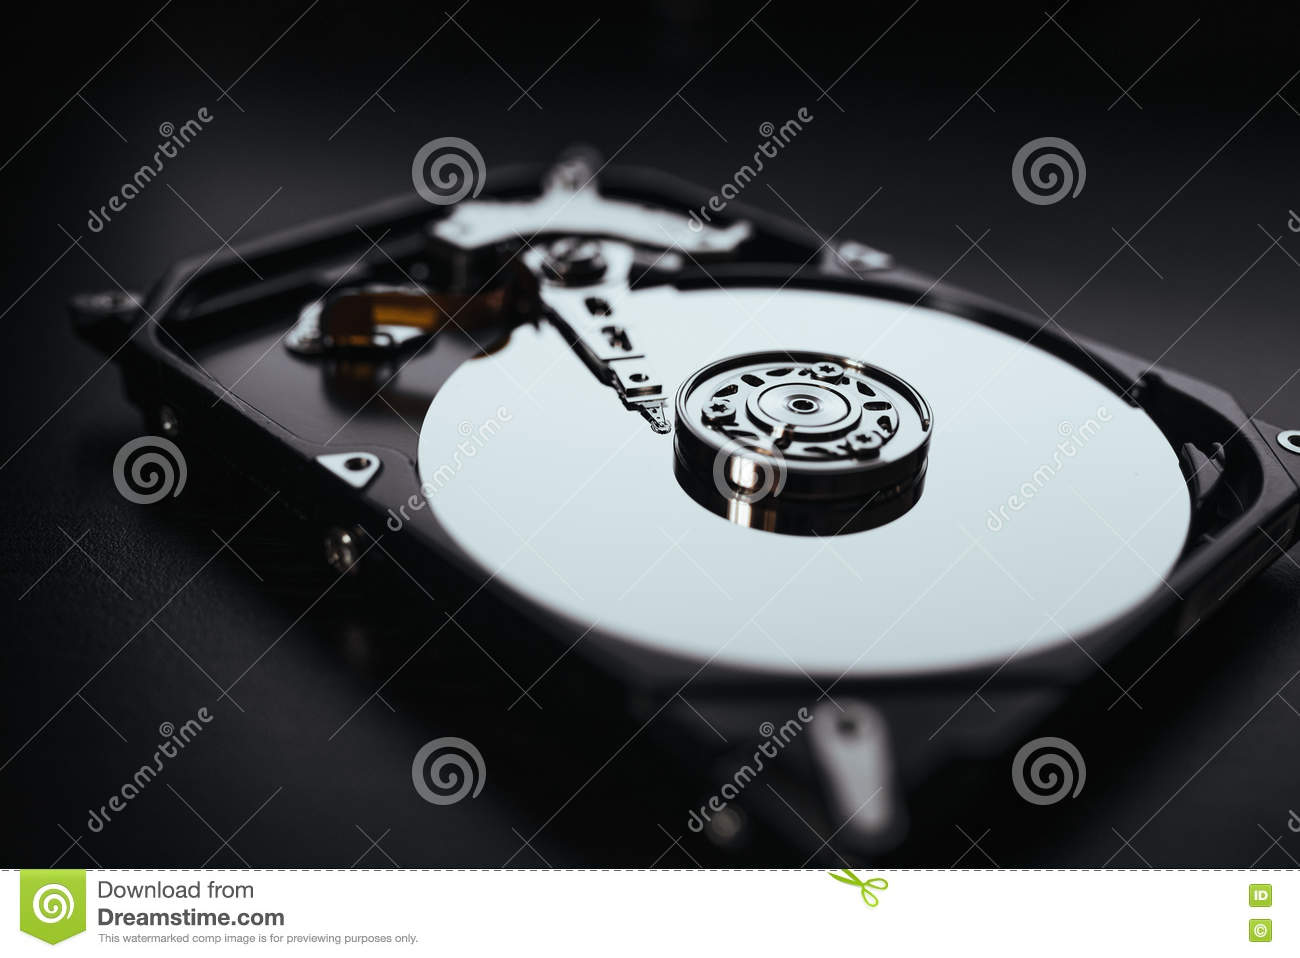 Disassembled hard drive from the computer (hdd) with mirror effects. Part of computer (pc, laptop)